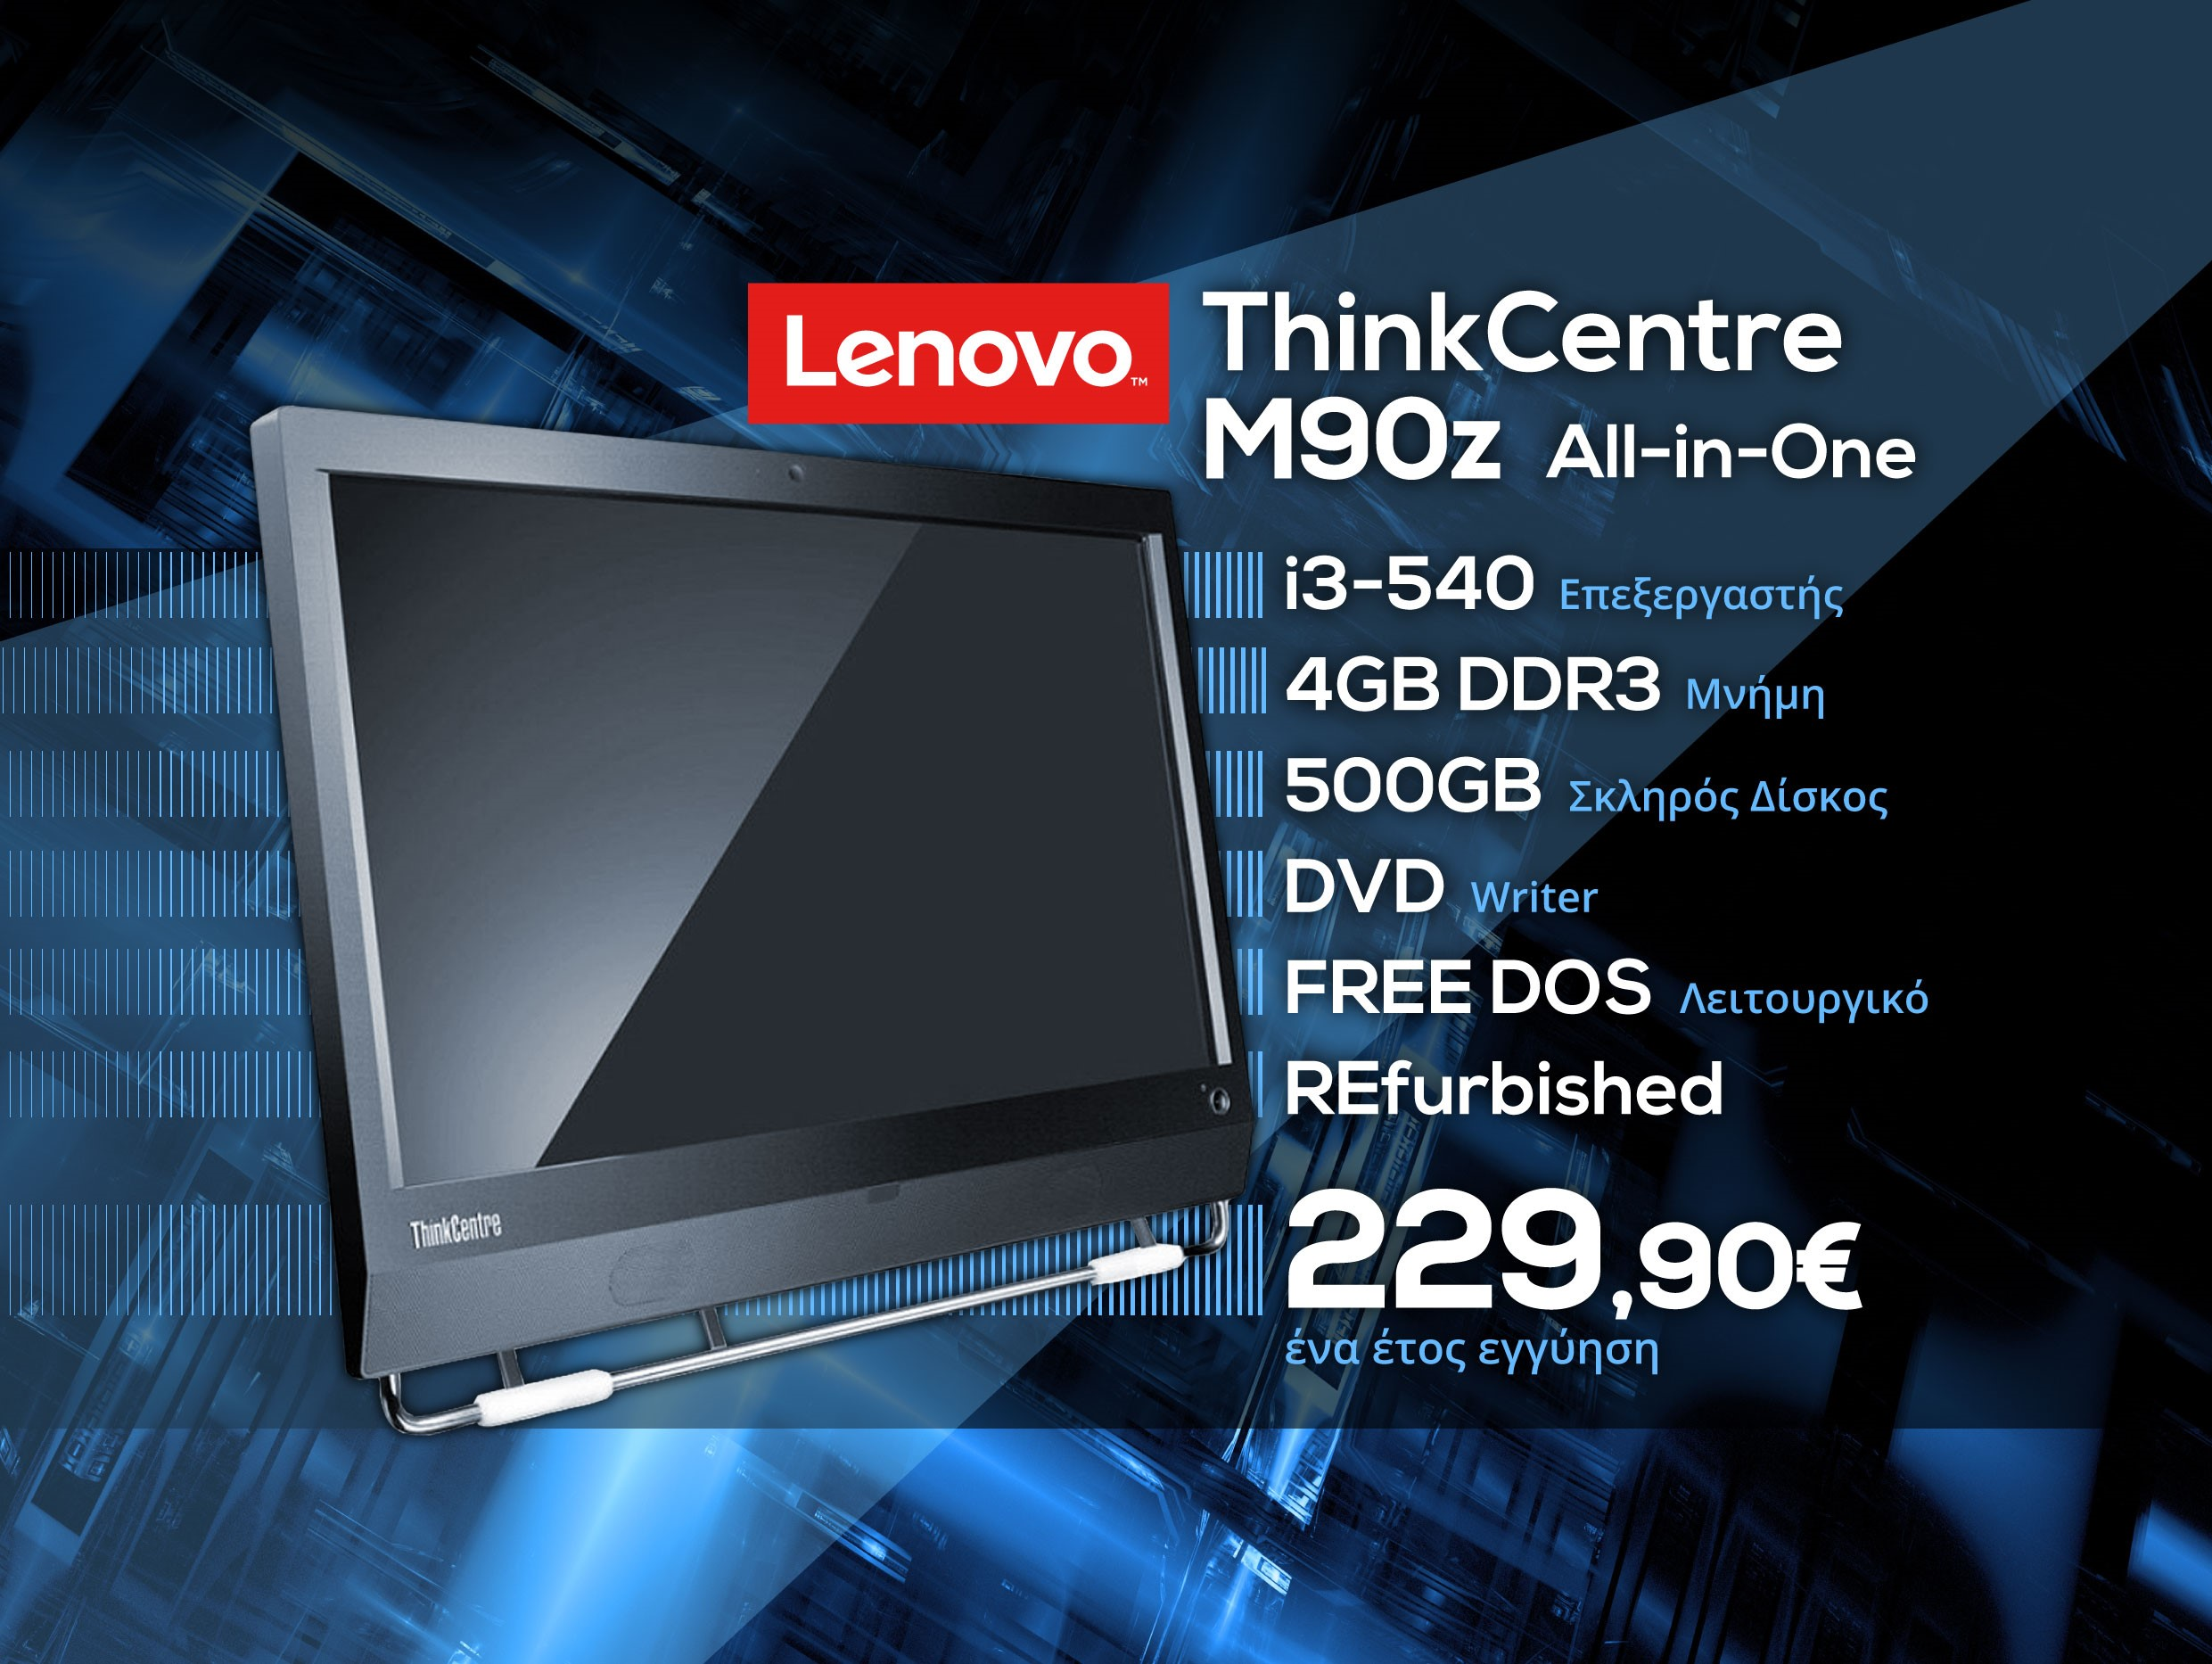 V52379 Lenovo ThinkCentre M90z All-in-One 23_i3-540_4GB_500GB_DVD_Free DOS Refurbished